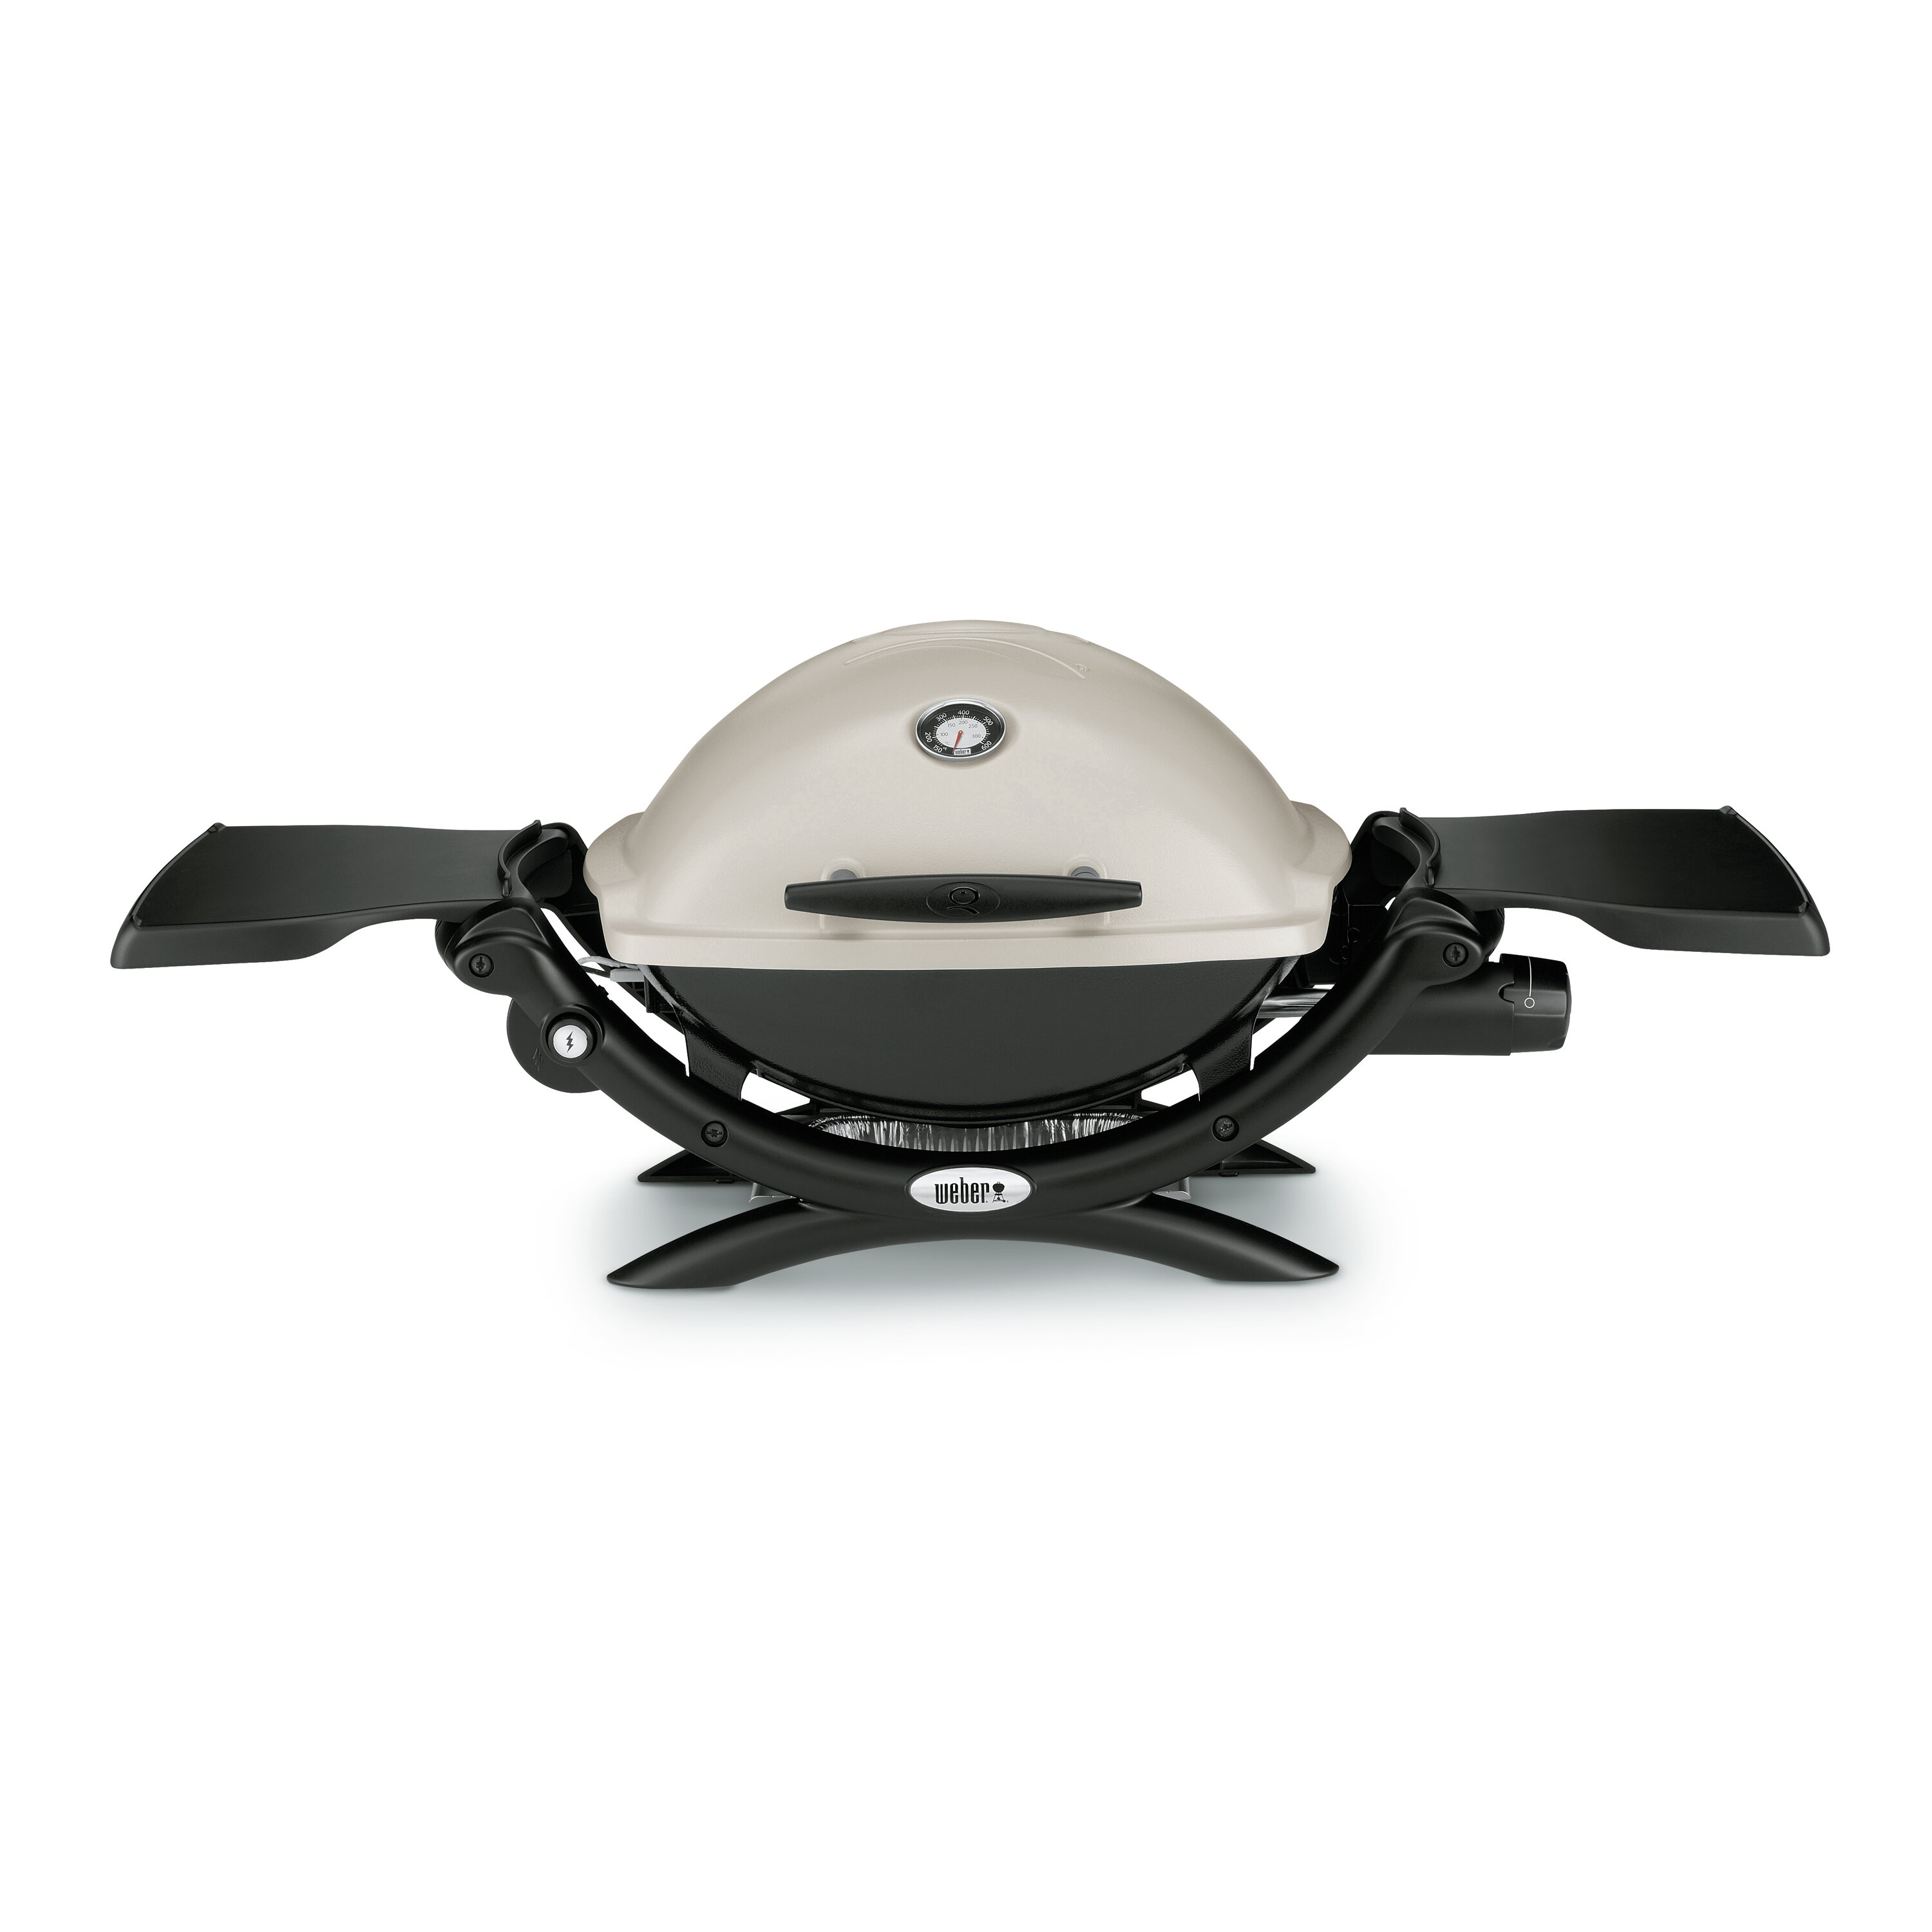 weber q series 1200 lp titanium portable gas grill. Black Bedroom Furniture Sets. Home Design Ideas